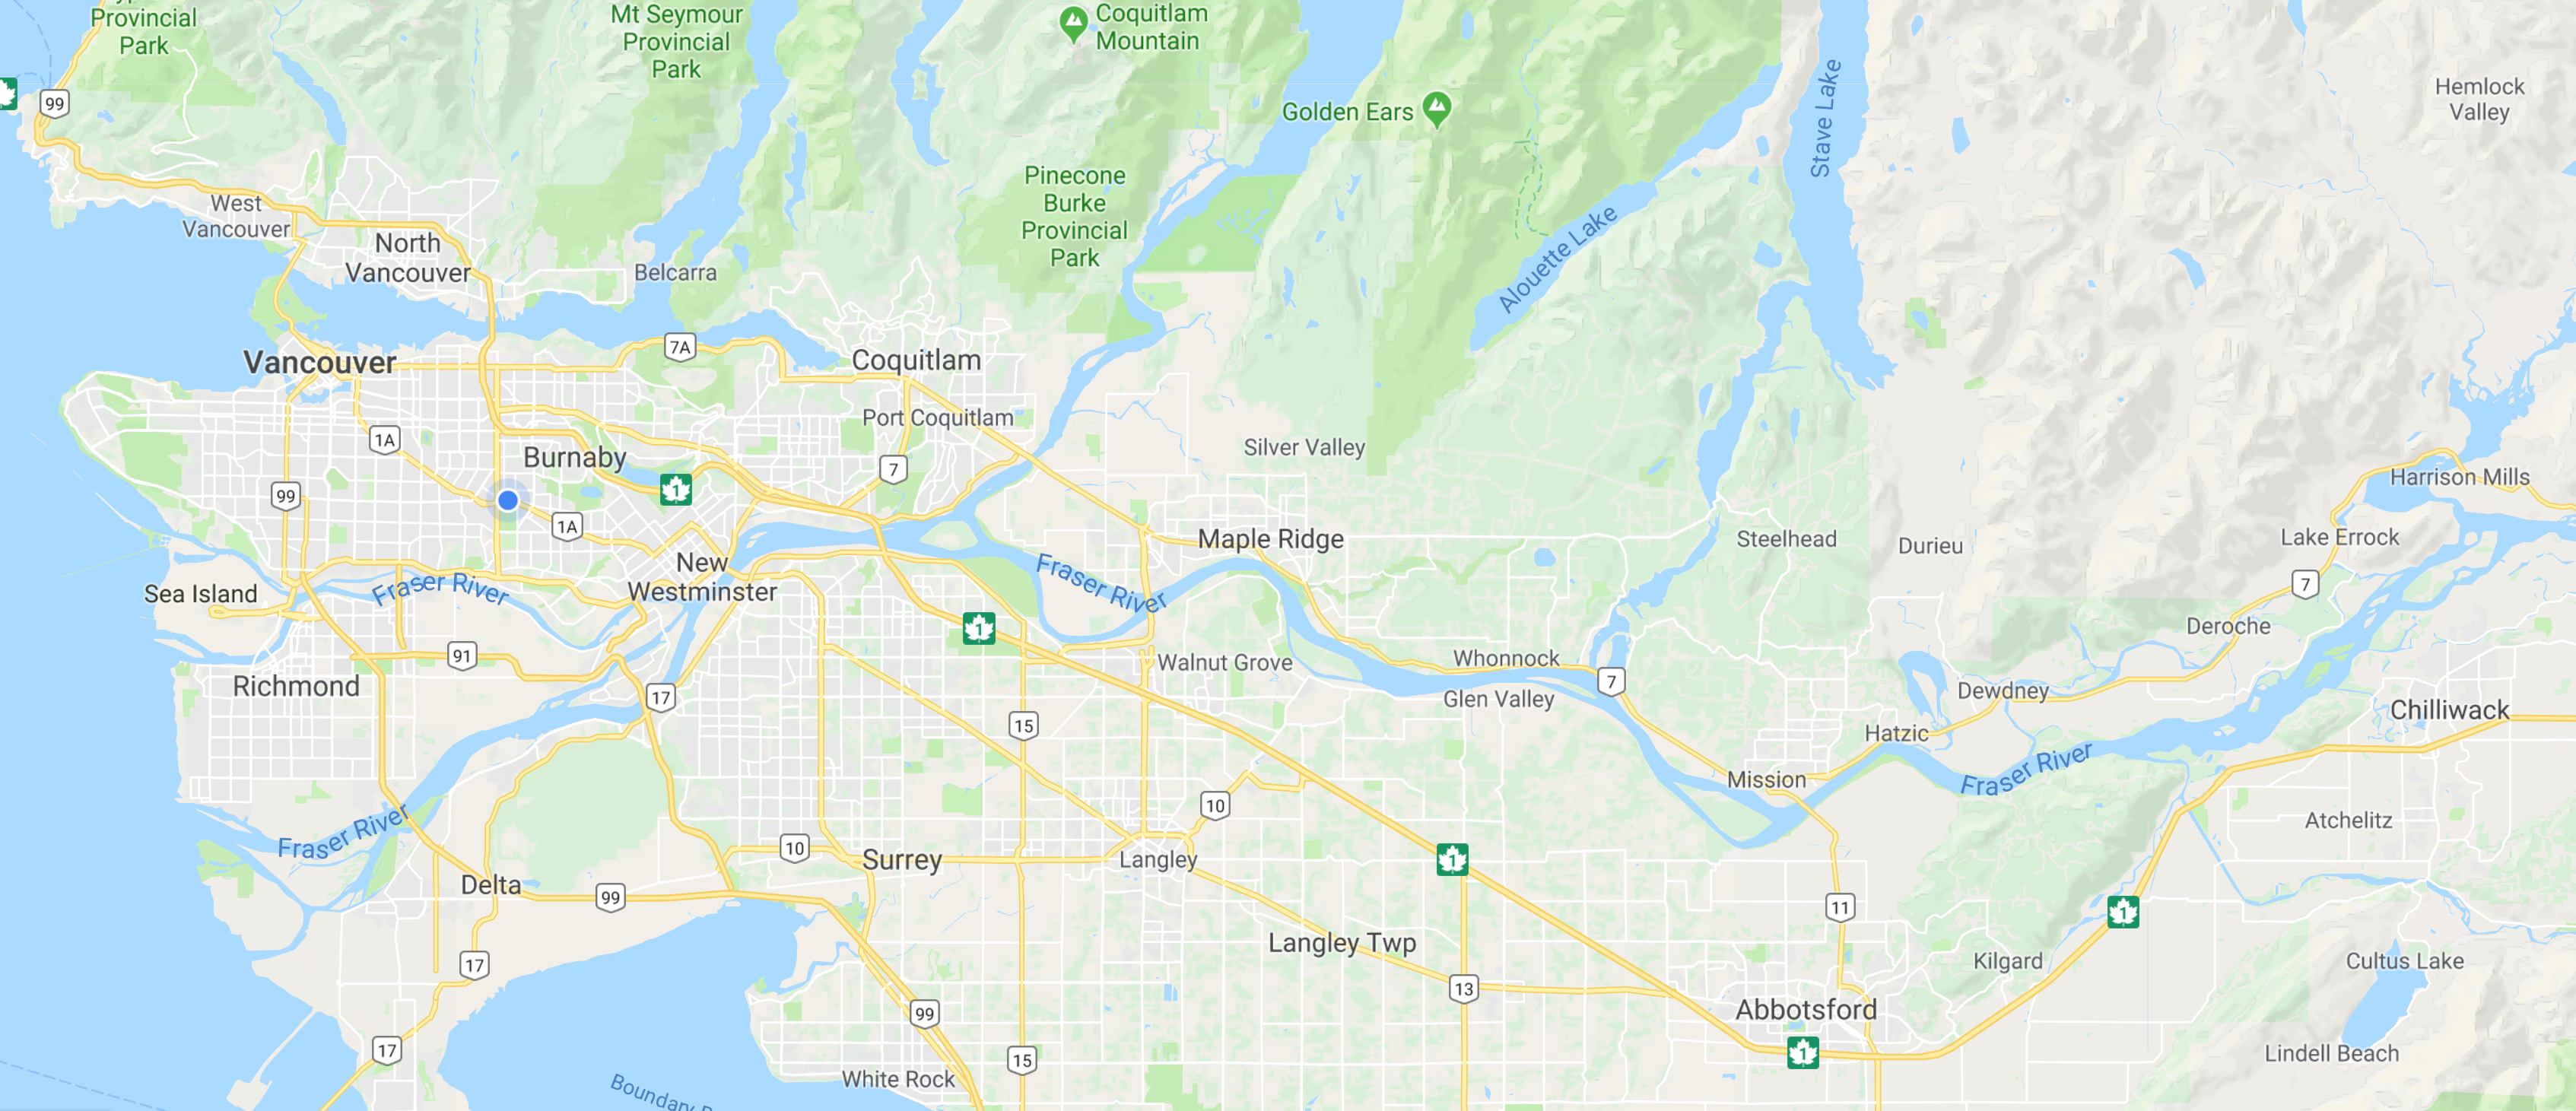 Home Inspector Vancouver, North Vancouver, West Vancouver, New Westminster, Burnaby, Port Moody, Port Coquitlam, Surrey, Delta, Coquitlam, Maple Ridge, Pitt Meadows